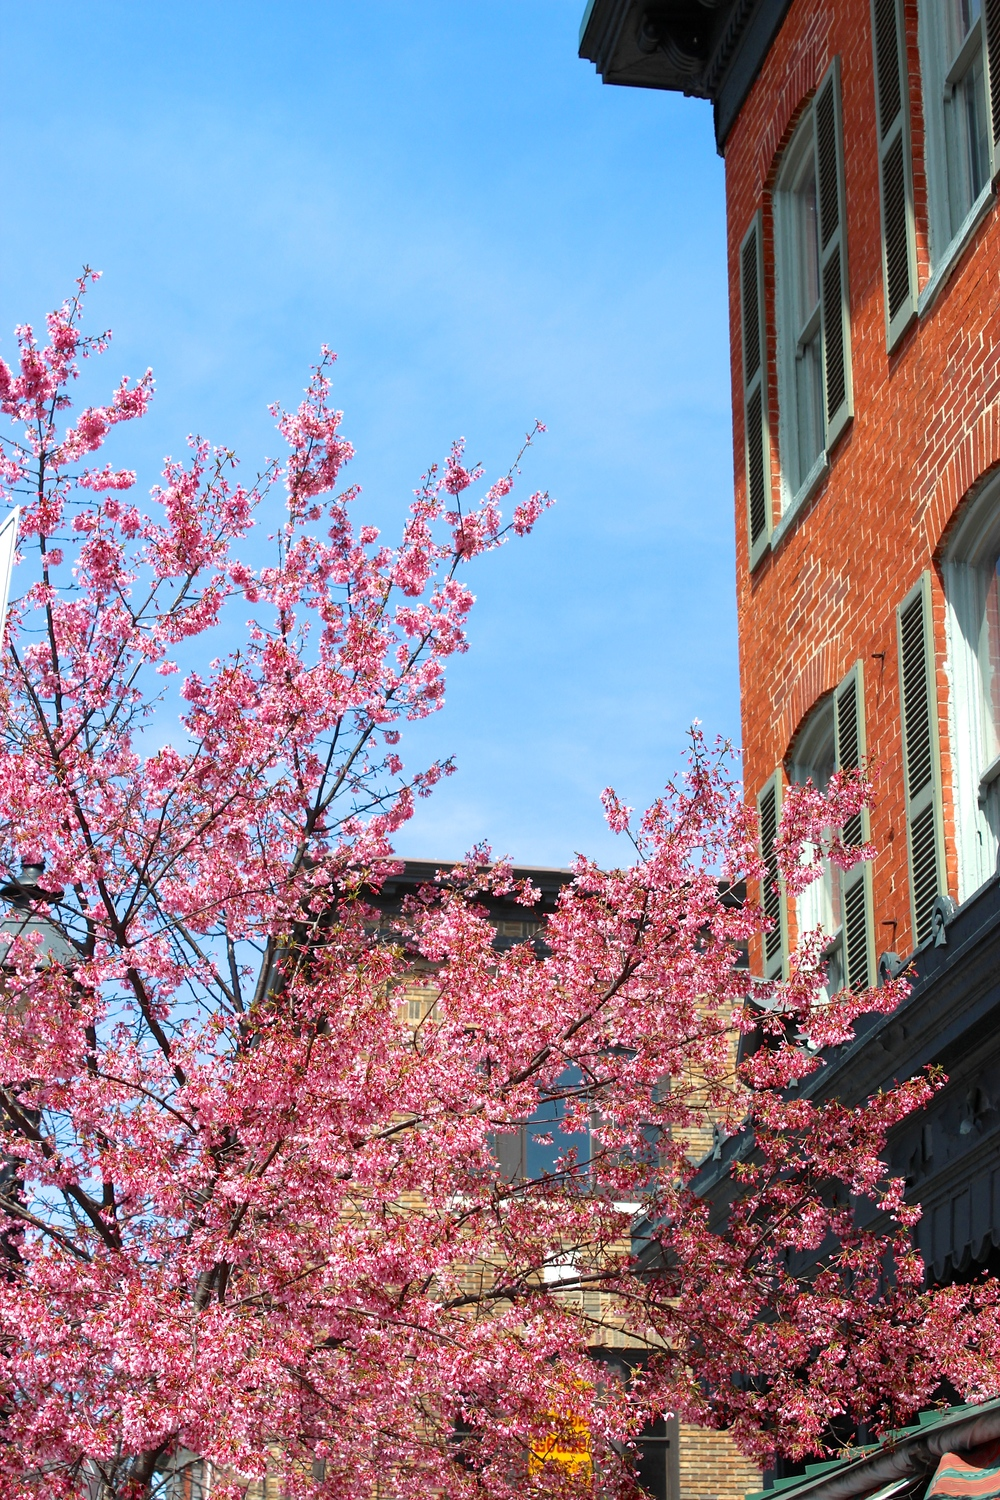 Cherry Blossoms blooming in Baltimore!